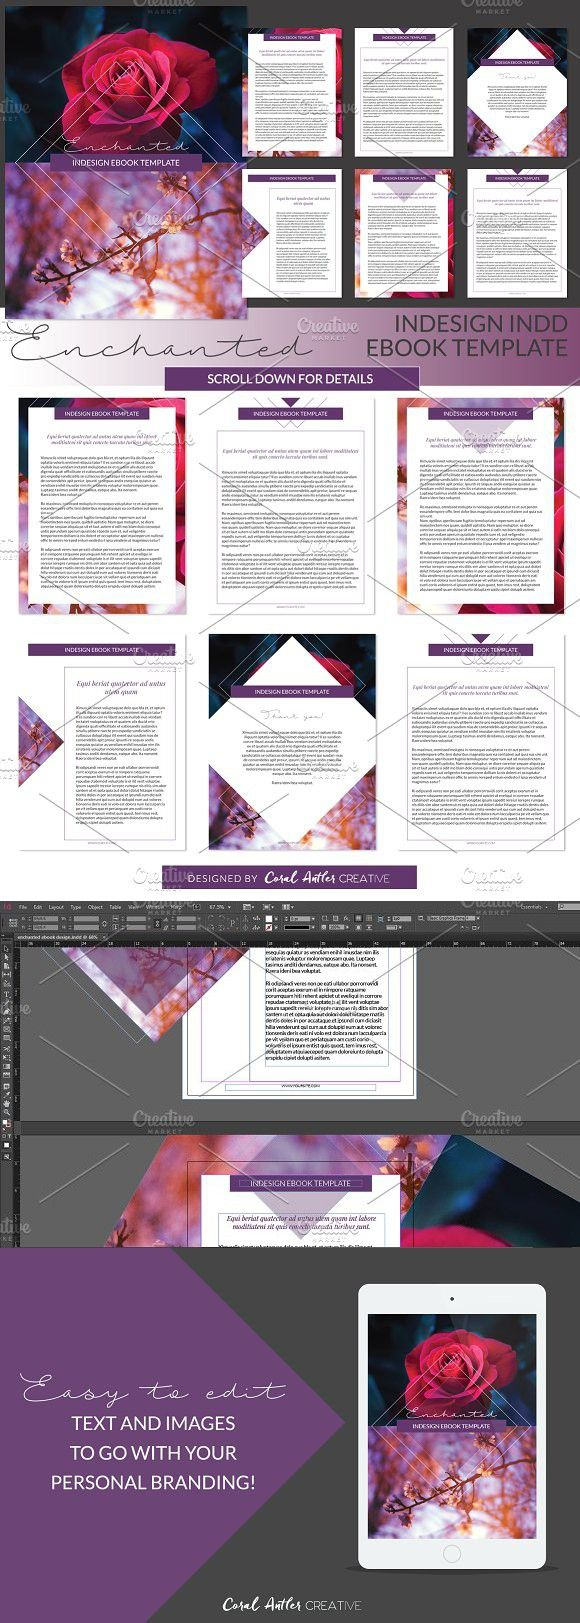 Enchanted Indesign Ebook Template. Creative Business Card Templates ...